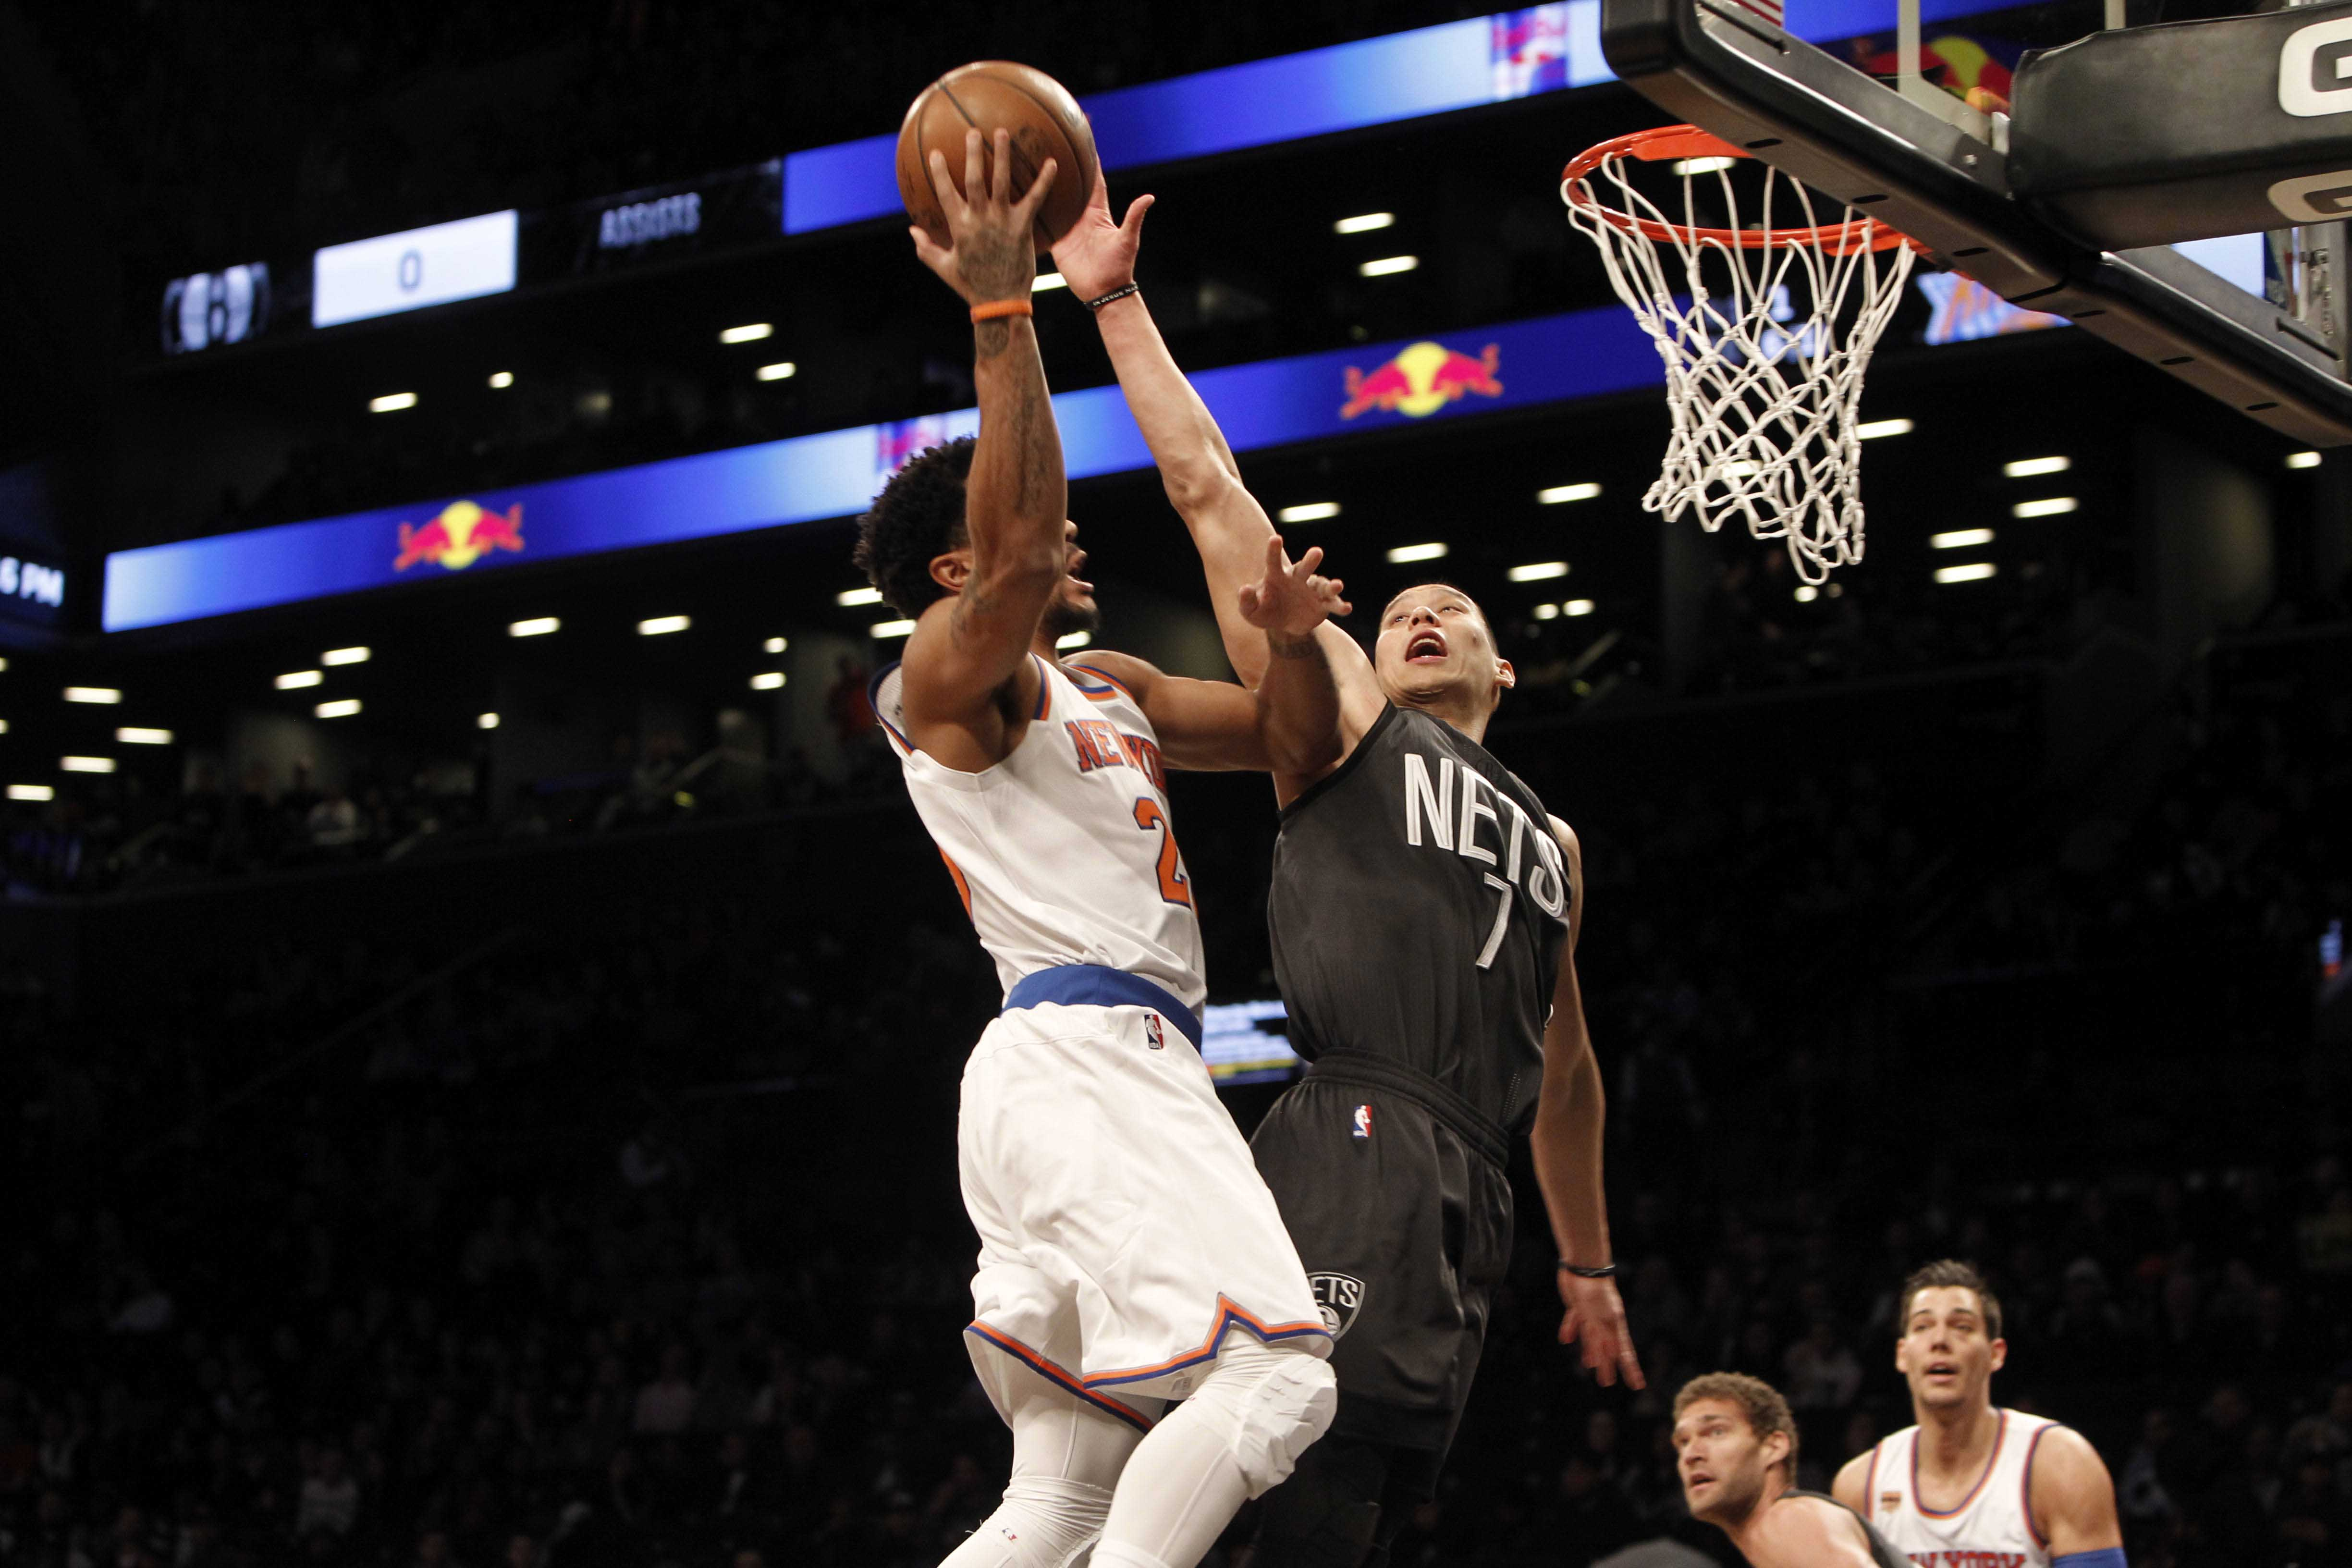 Knicks Tank: Poor Season Continues In Loss To League-Worst Nets